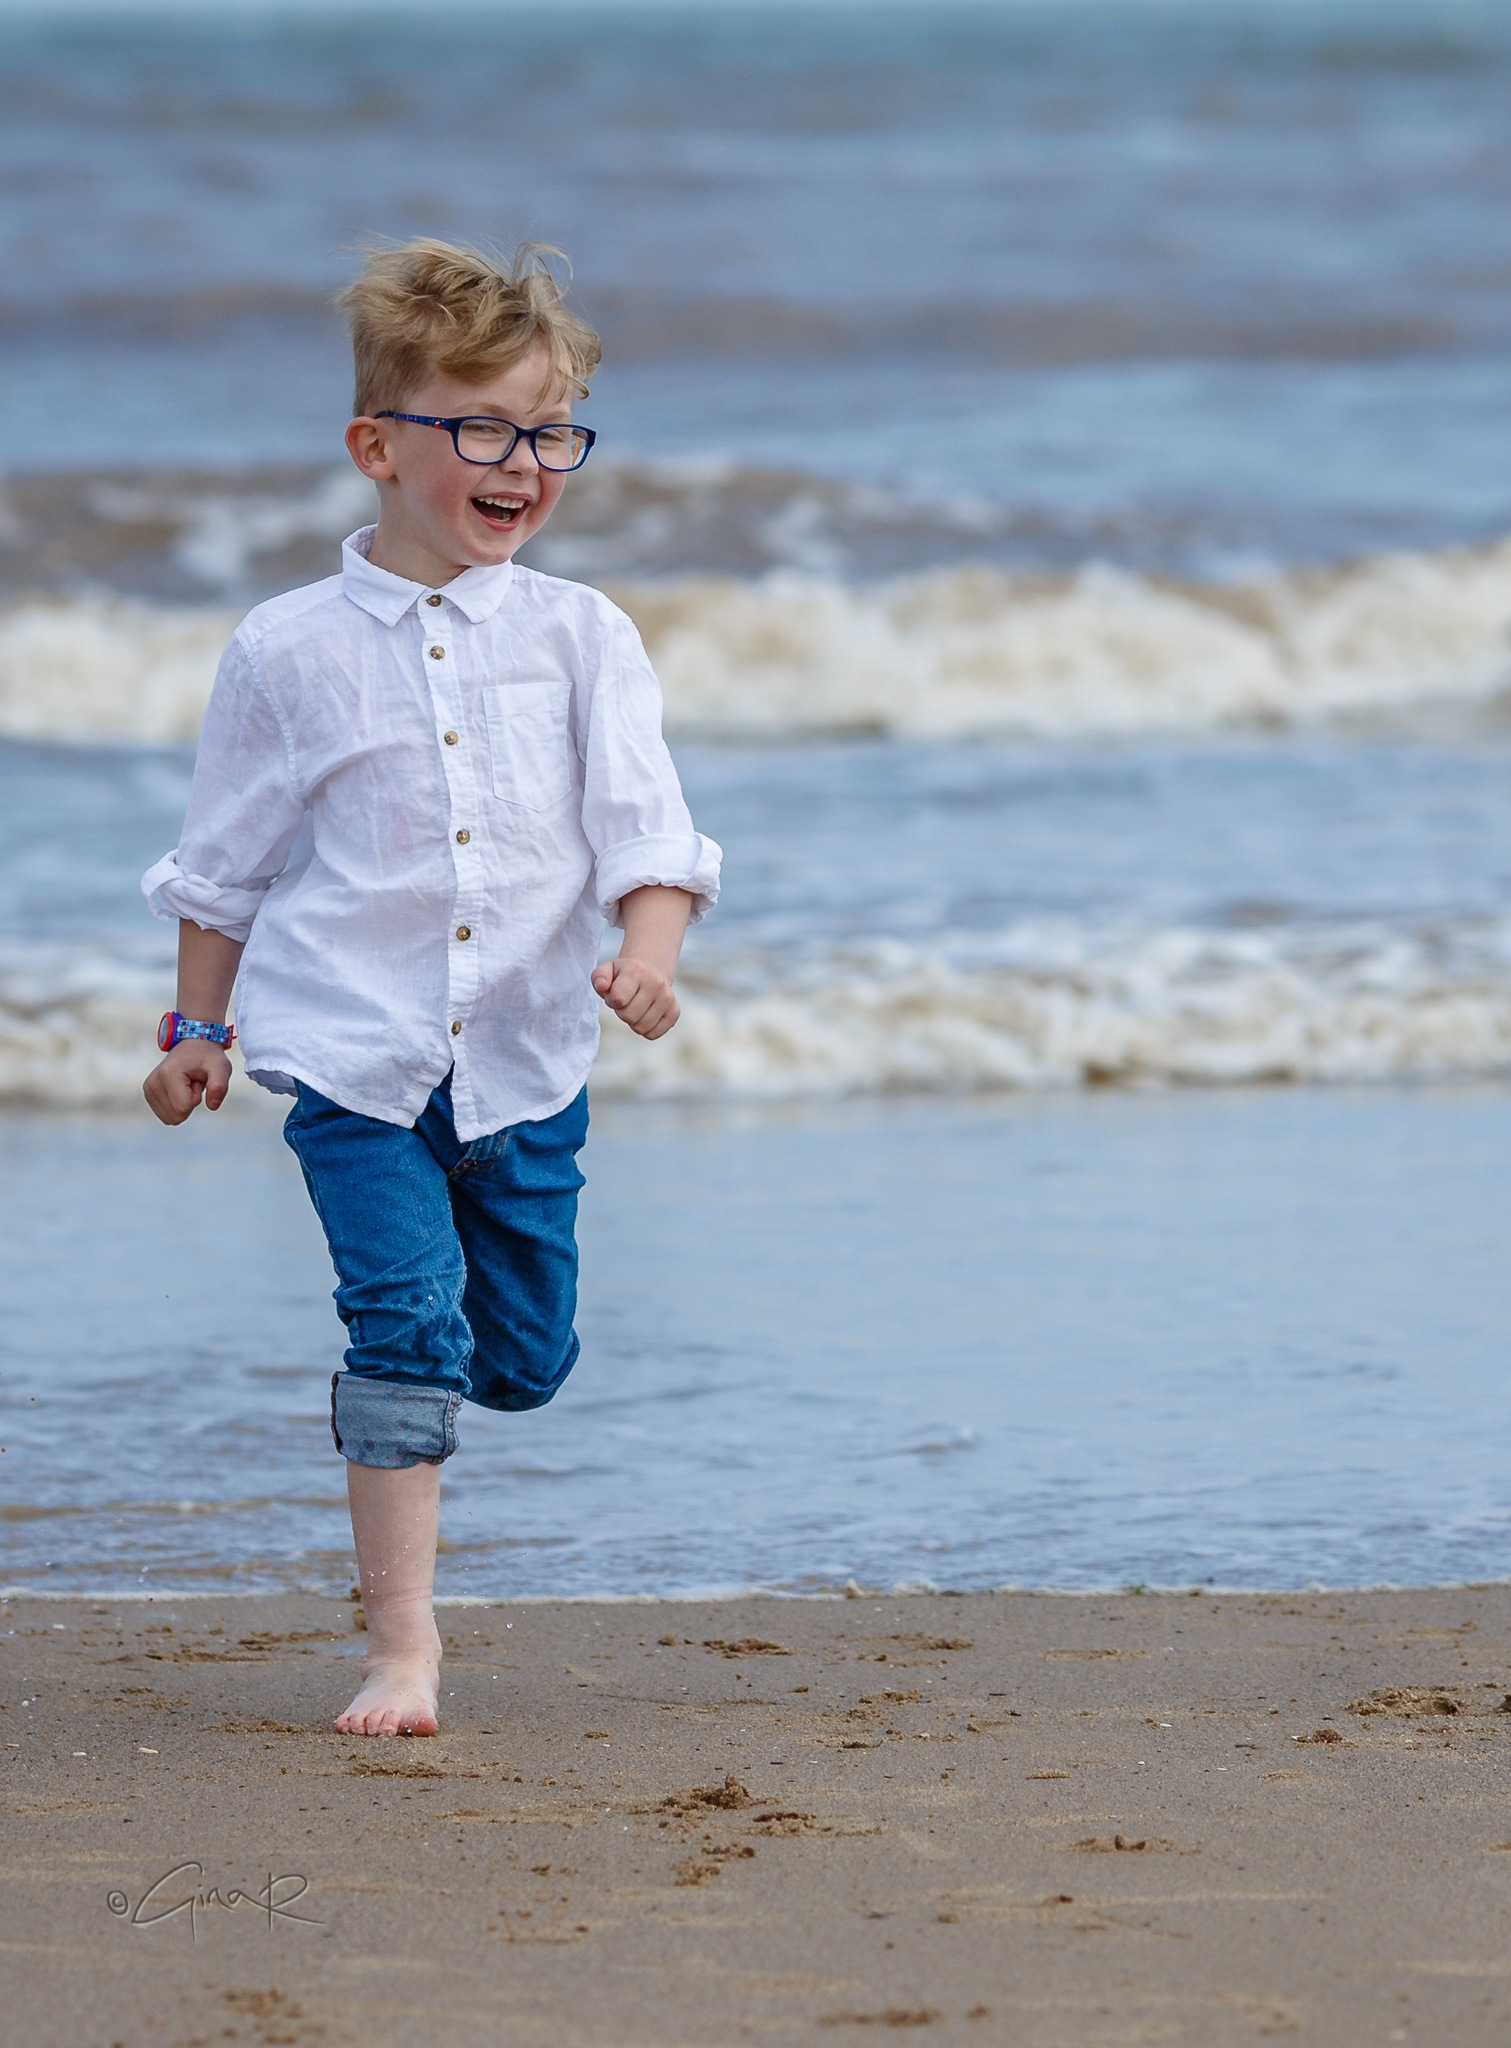 Grandsons having fun on the beach  by Gina Rayment